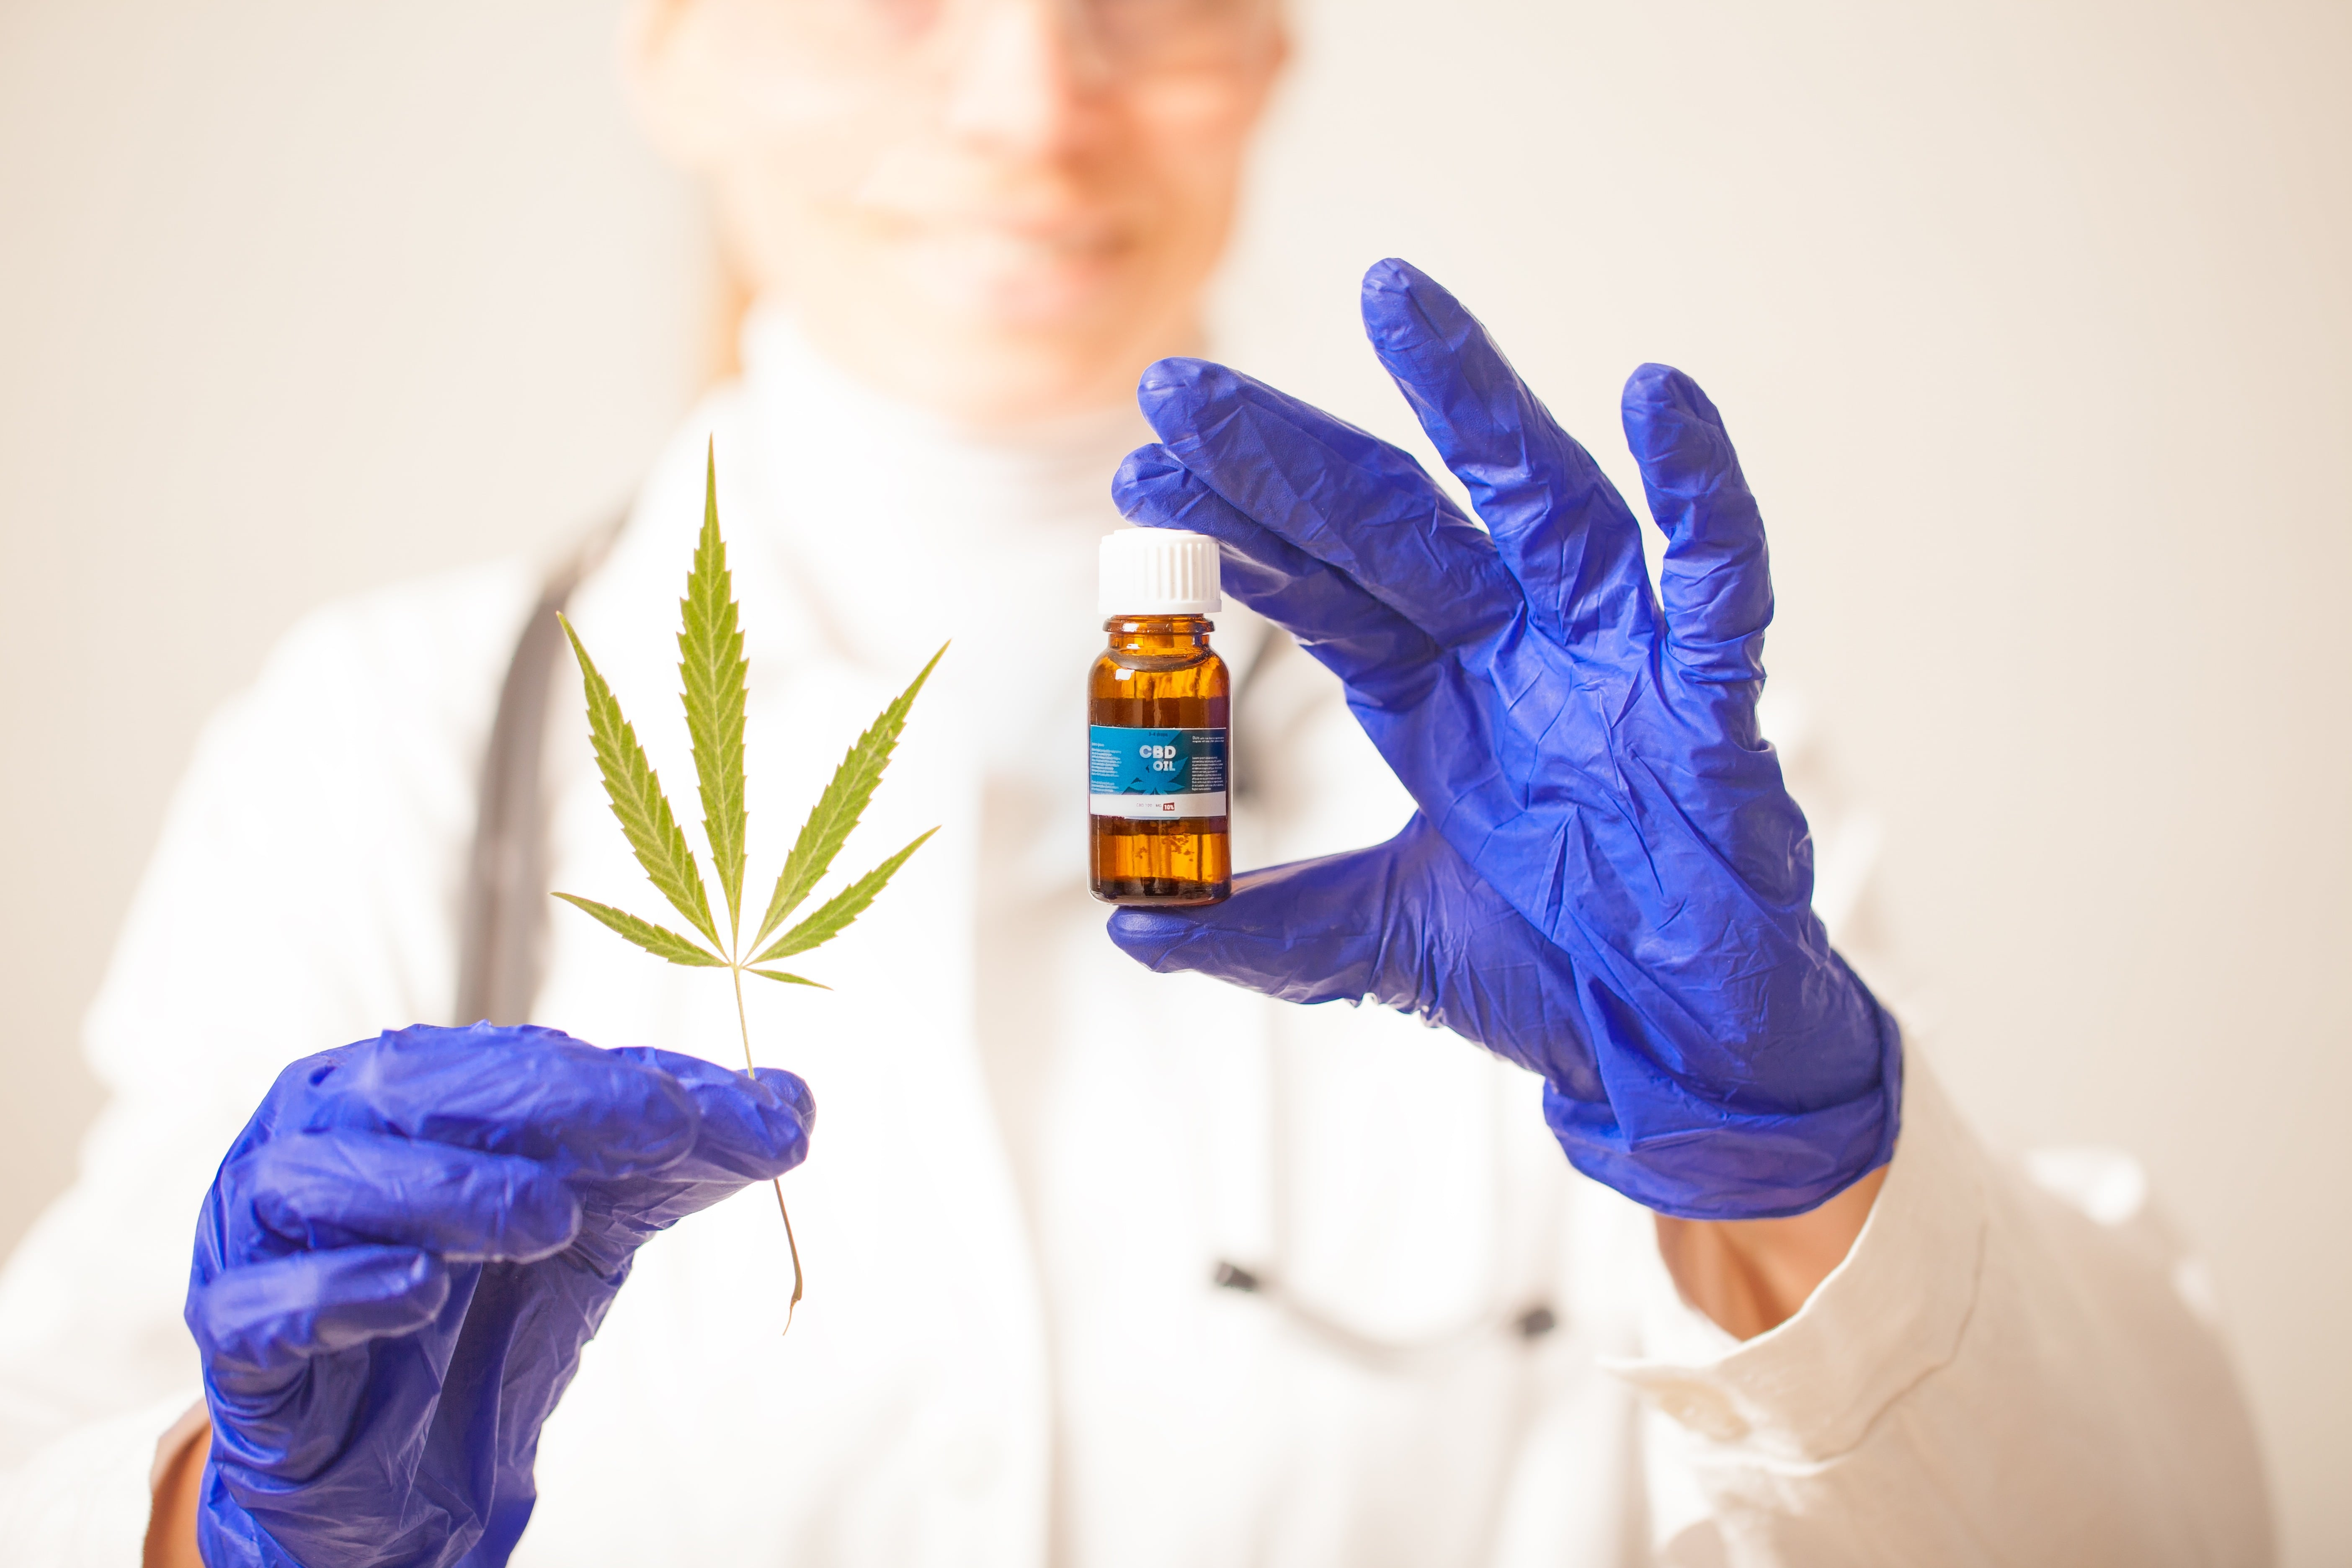 A gloved scientist with a vial of CBD and a hemp leaf. 'Full spectrum' extracts contain more cannabinoids, terpenes, and other beneficial chemicals found in hemp & cannabis.